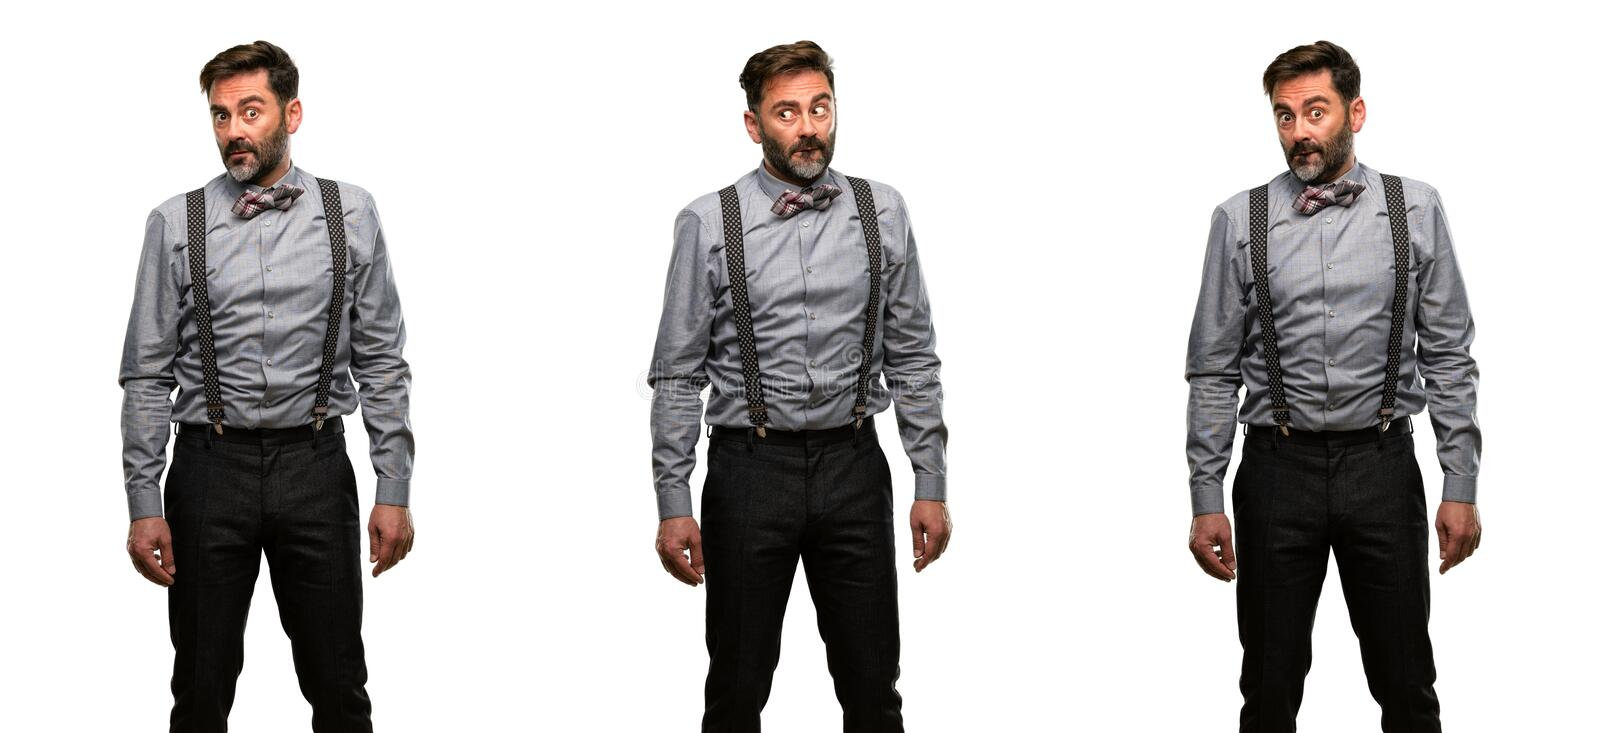 Middle age man wearing a suit stock images